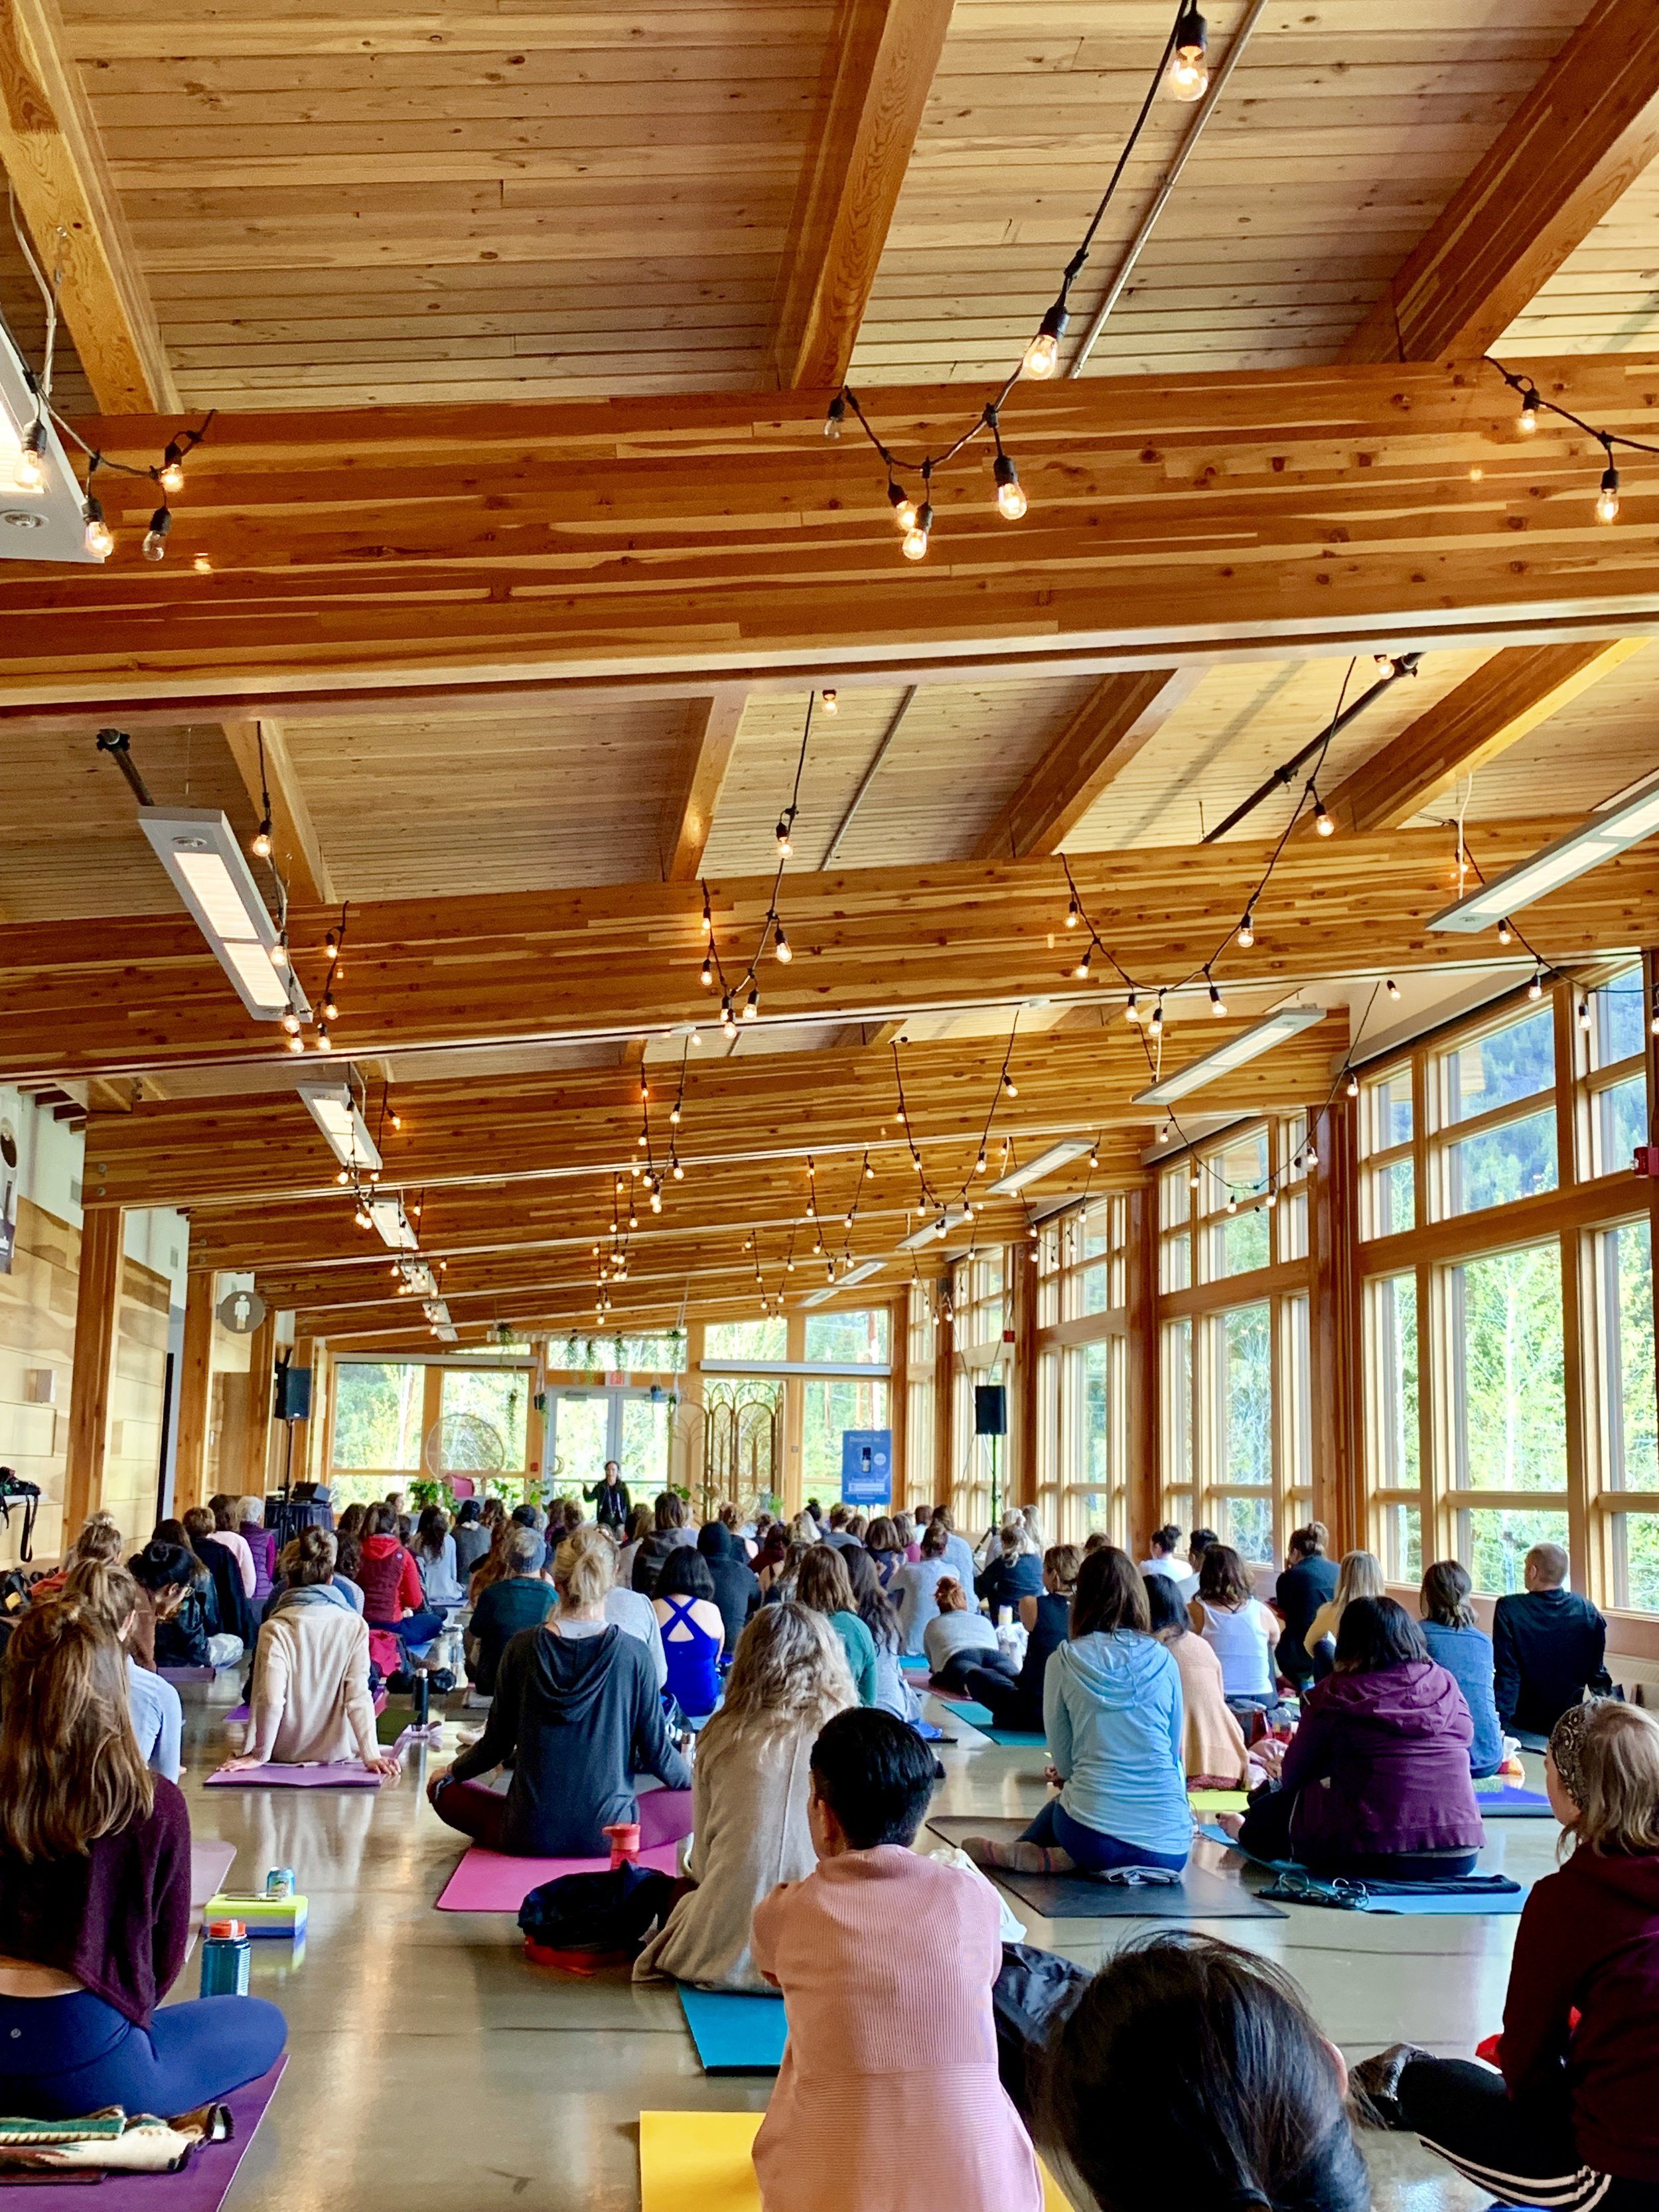 Arise with Stacey Irvine, May 25, 2019 - Banff Yoga festival